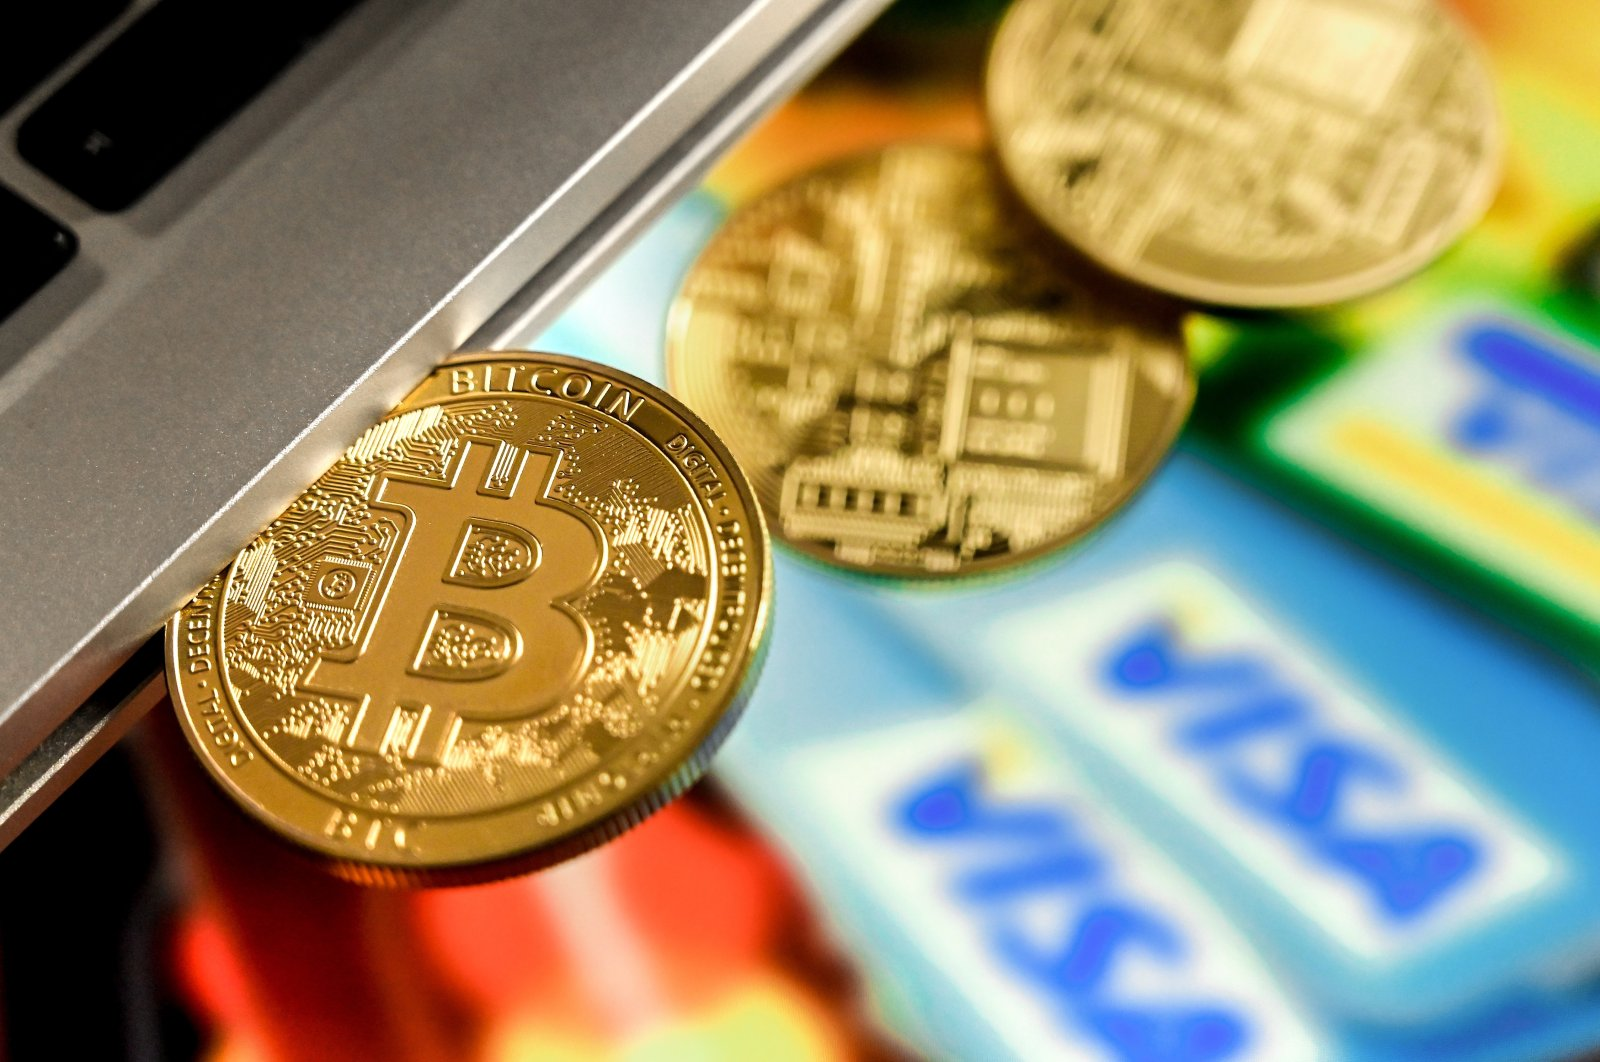 A bitcoin sits in a laptop's CD drive above several credit cards, in Duesseldorf, Germany, Feb. 17, 2021. (EPA Photo)